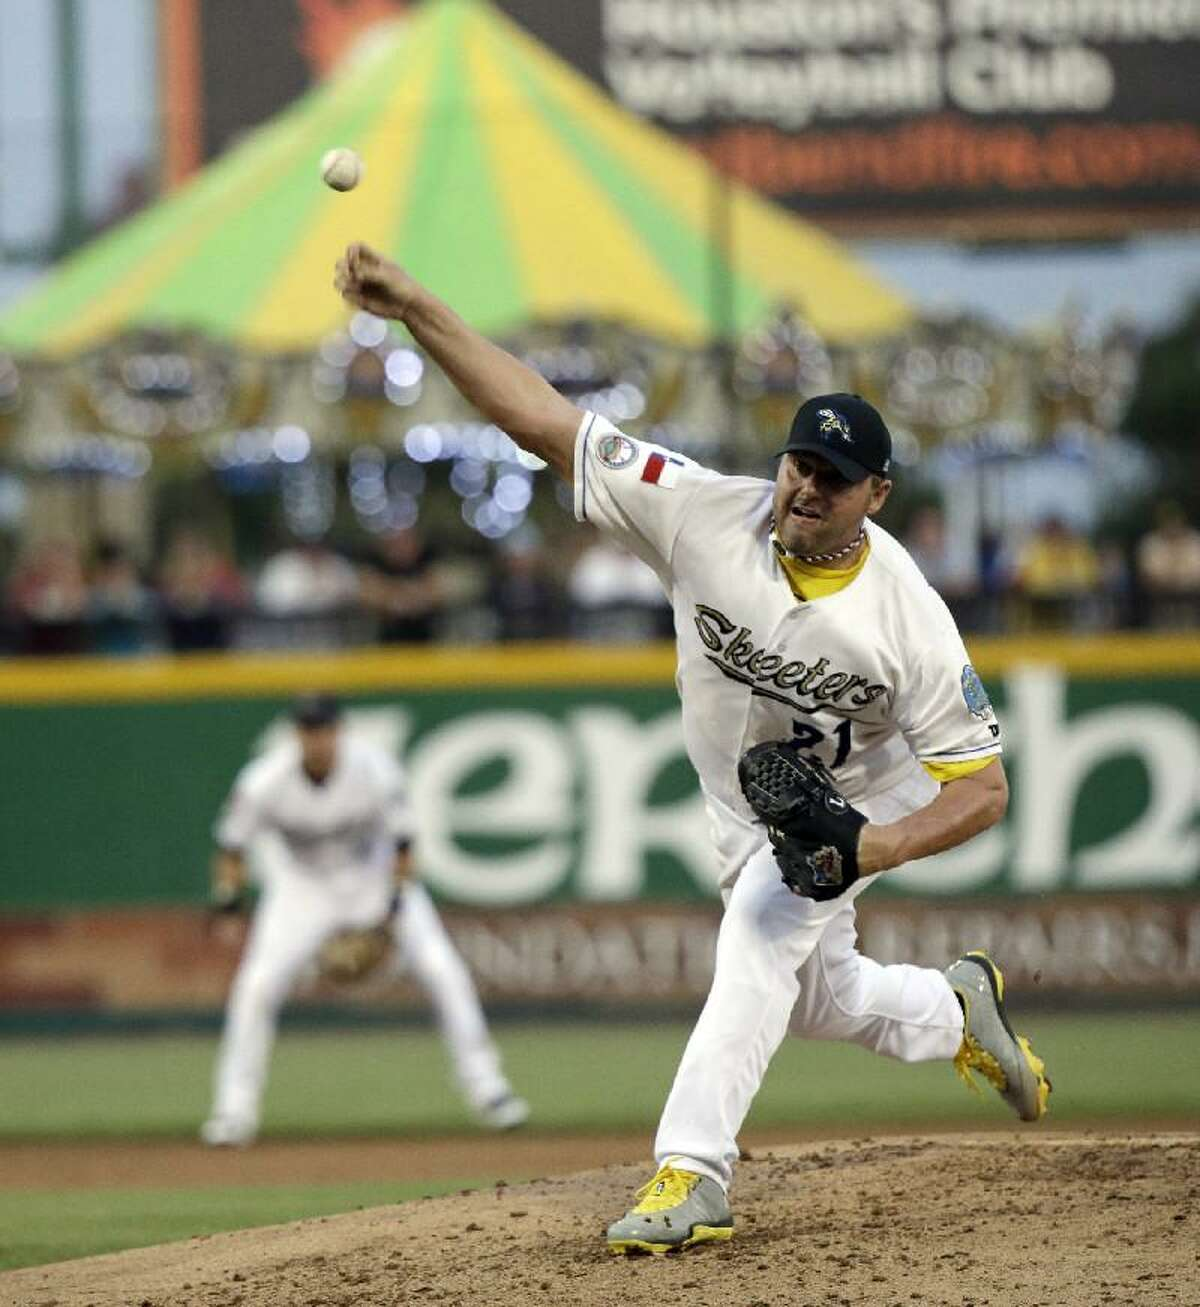 ASSOCIATED PRESS Sugar Land Skeeters pitcher Roger Clemens throws a pitch during a game against the Bridgeport Bluefish Saturday in Sugar Land, Texas. Clemens, a seven-time Cy Young Award winner, signed with the Skeeters of the independent Atlantic League this week.